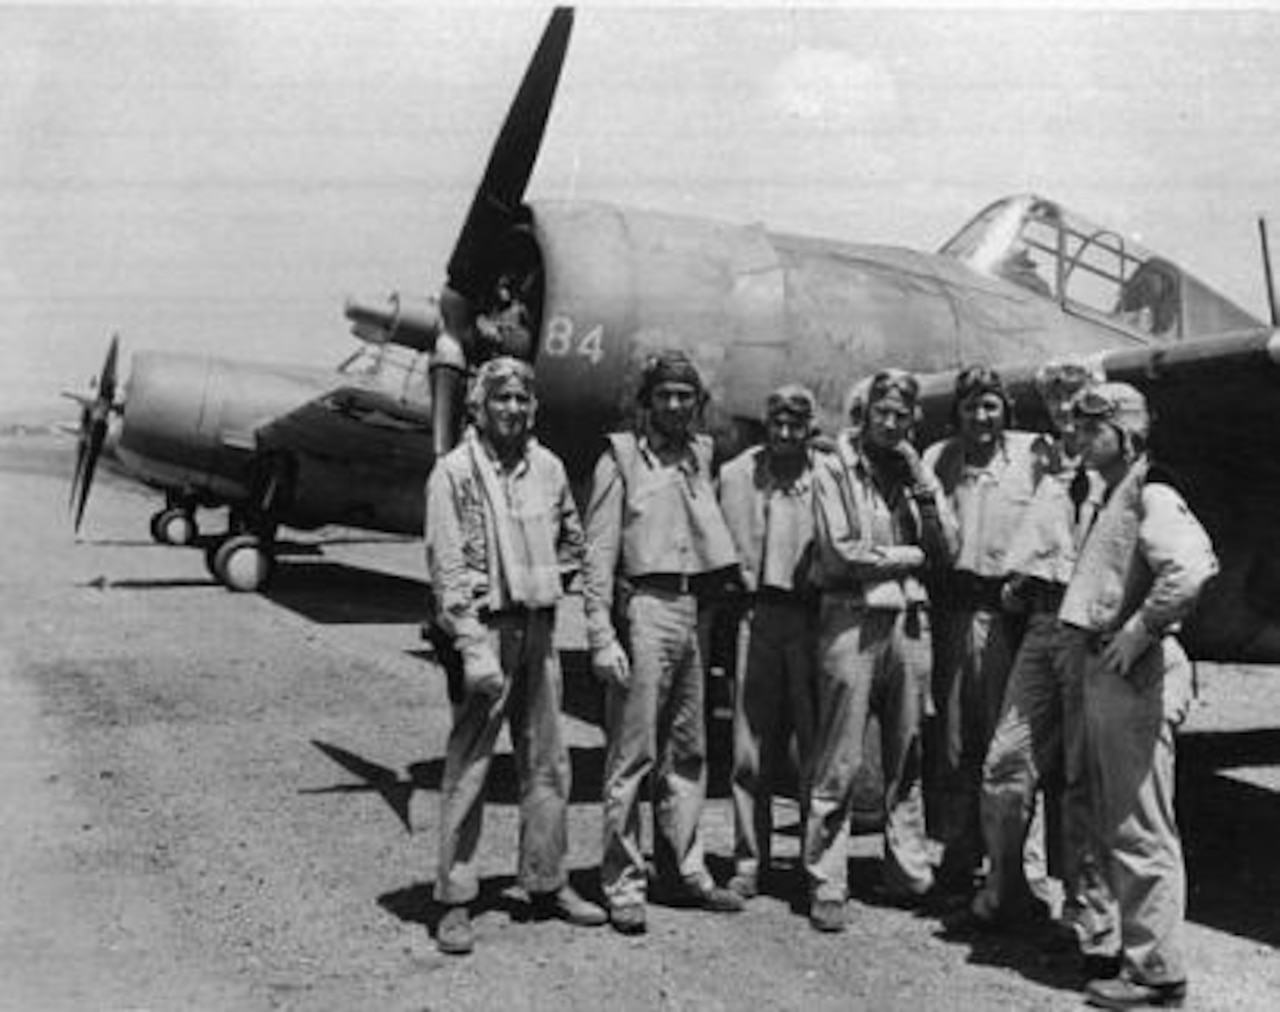 World War II aircrew stands in front of an airplane.